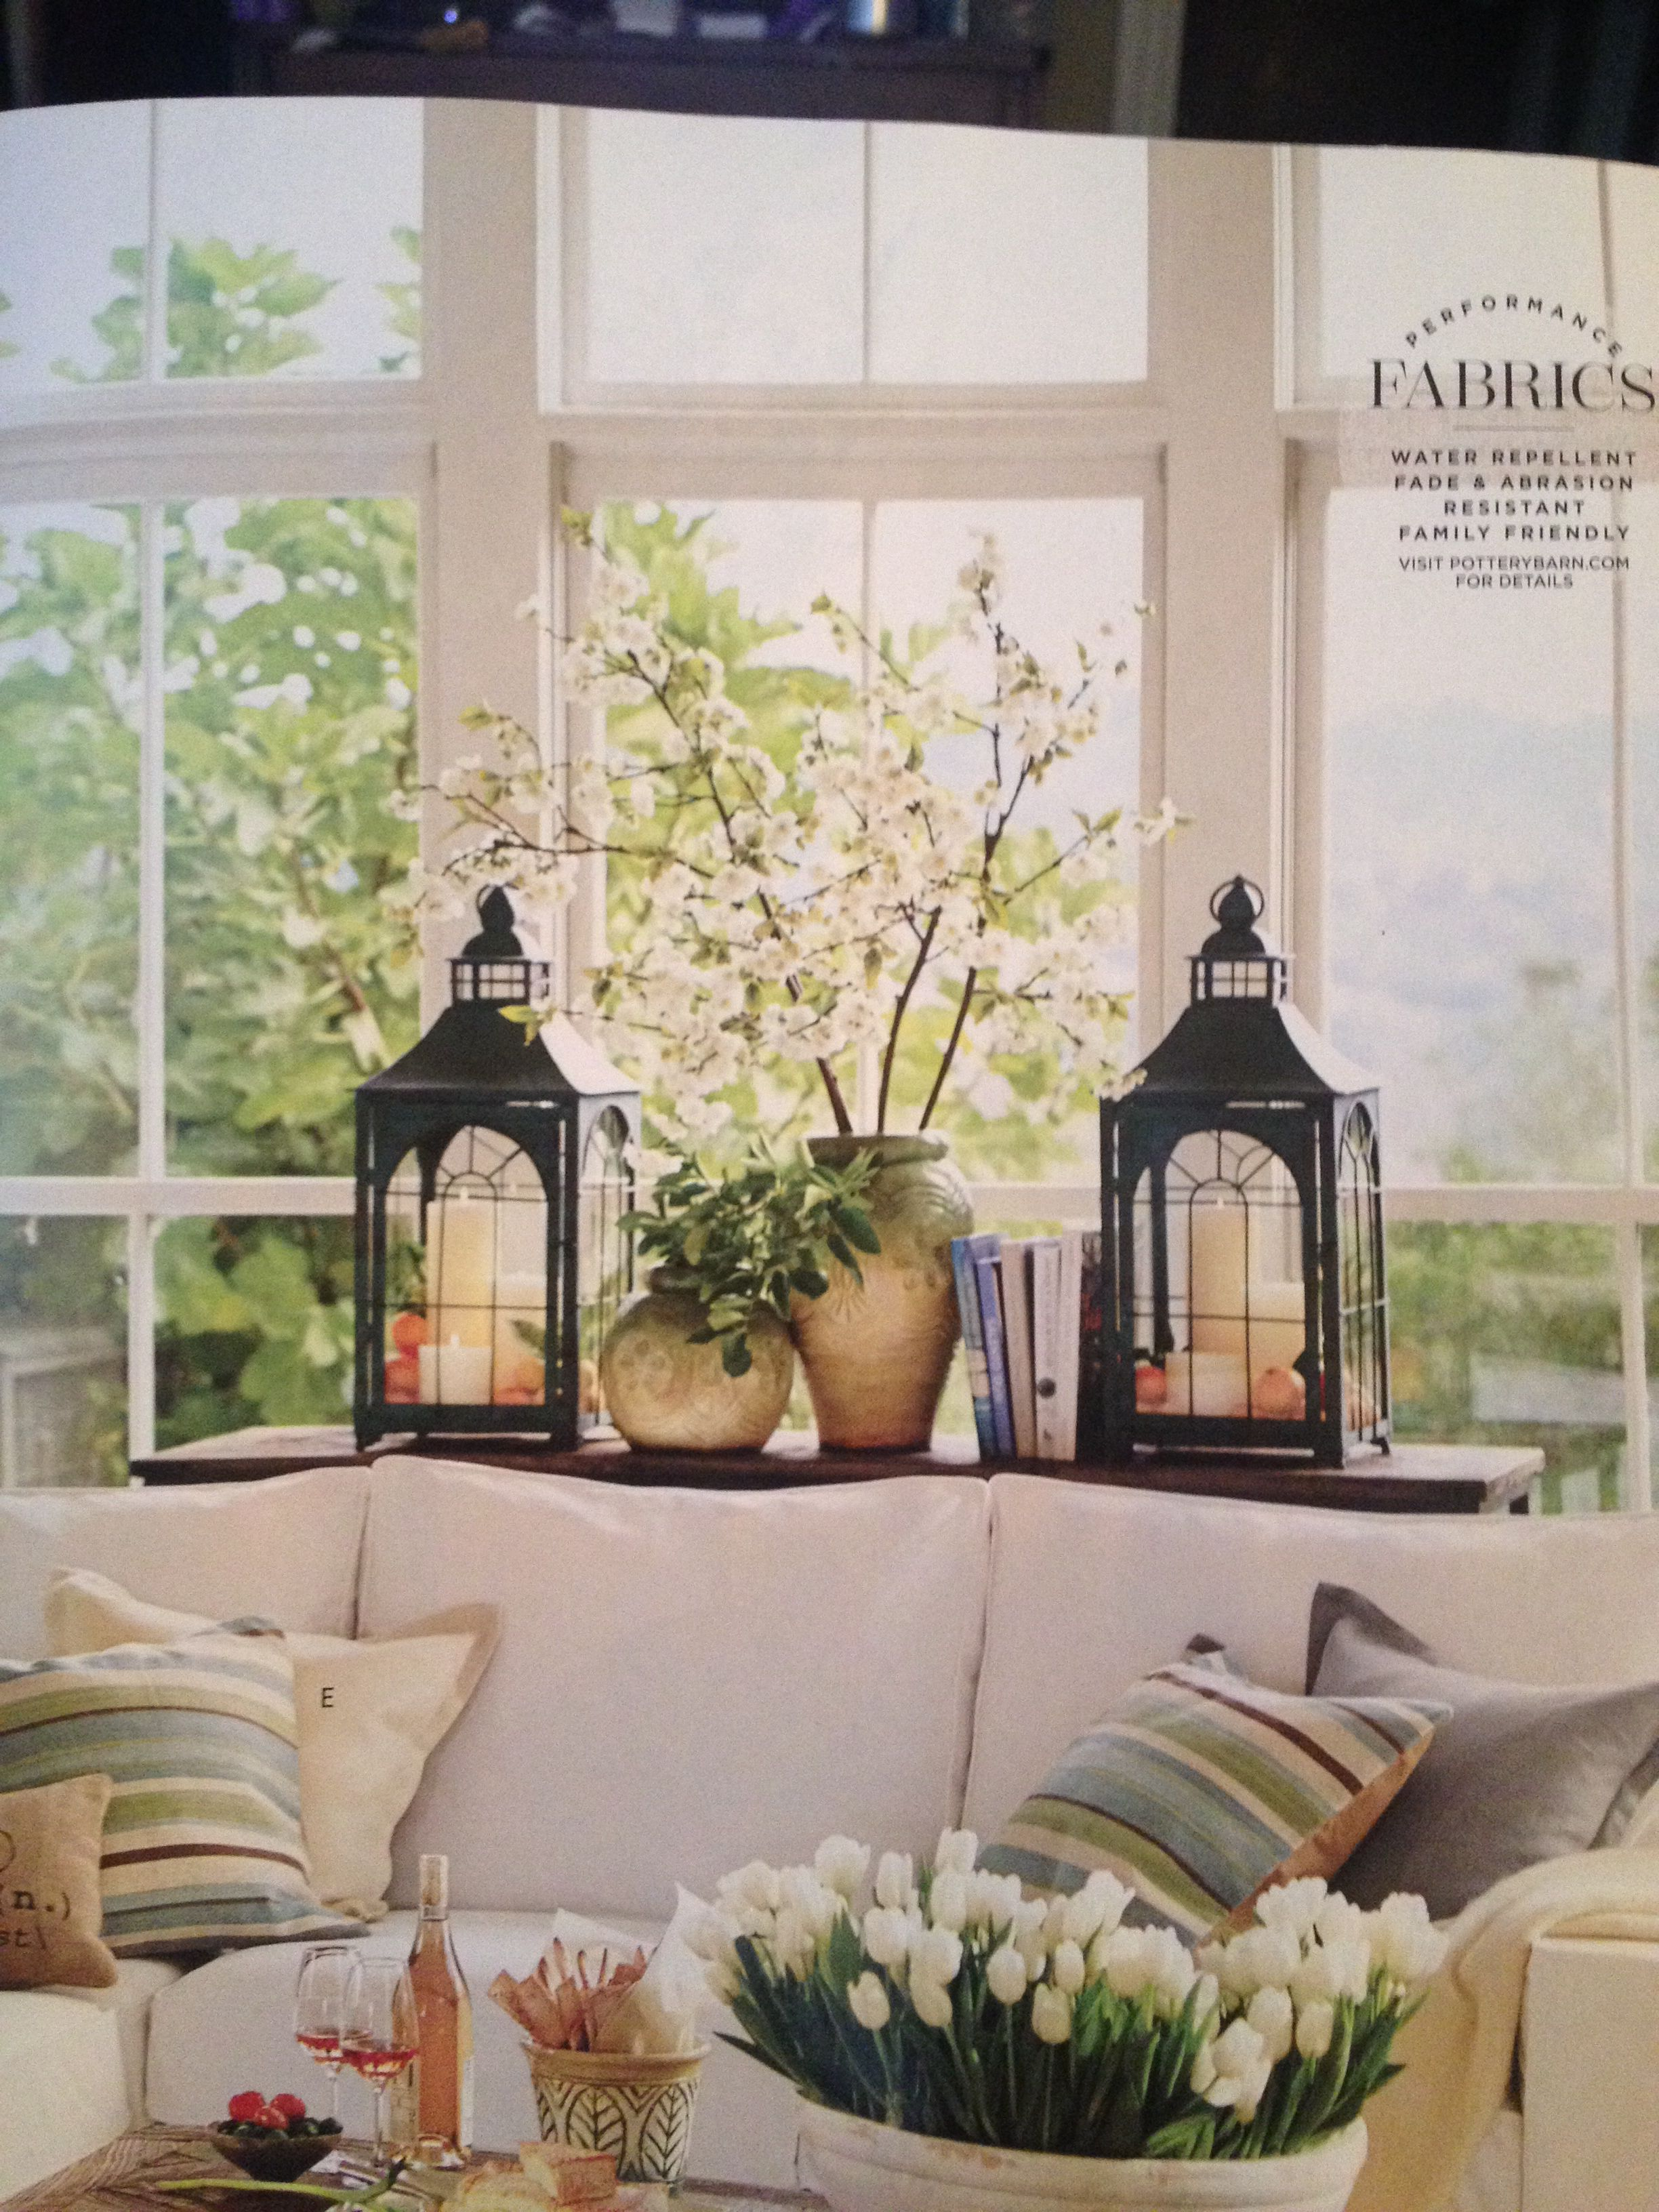 Pottery barn living room ideas for redecorating pinterest pottery window and tables for Pottery barn living room ideas pinterest